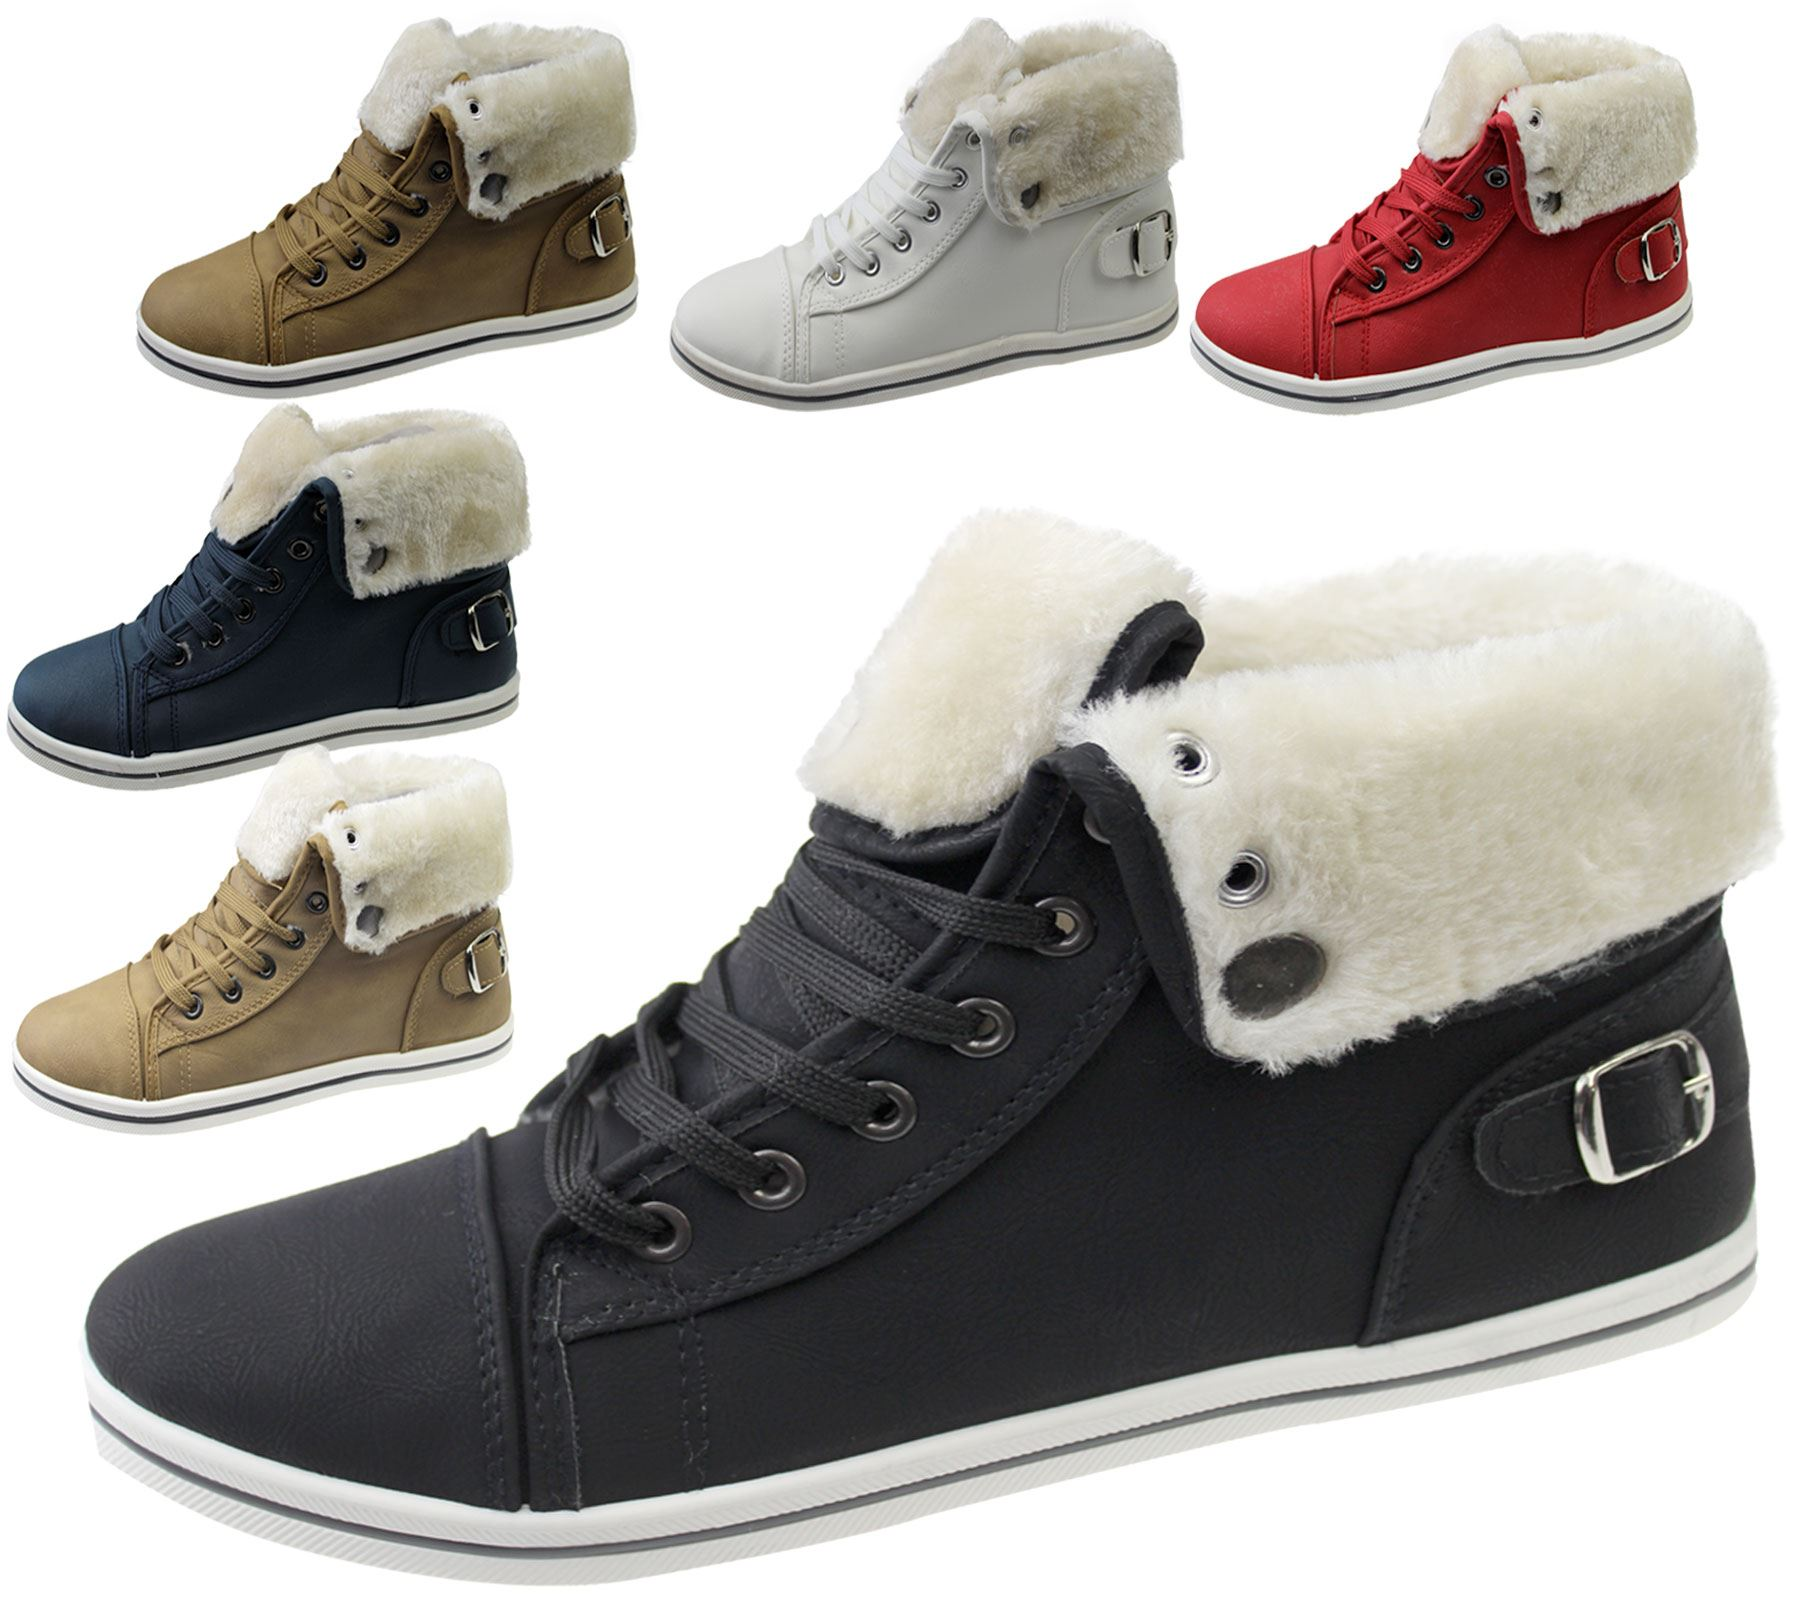 Girls-Boots-Womens-Warm-Lined-High-Top-Ankle-Trainer-Ladies-Winter-Shoes-Size miniatura 103